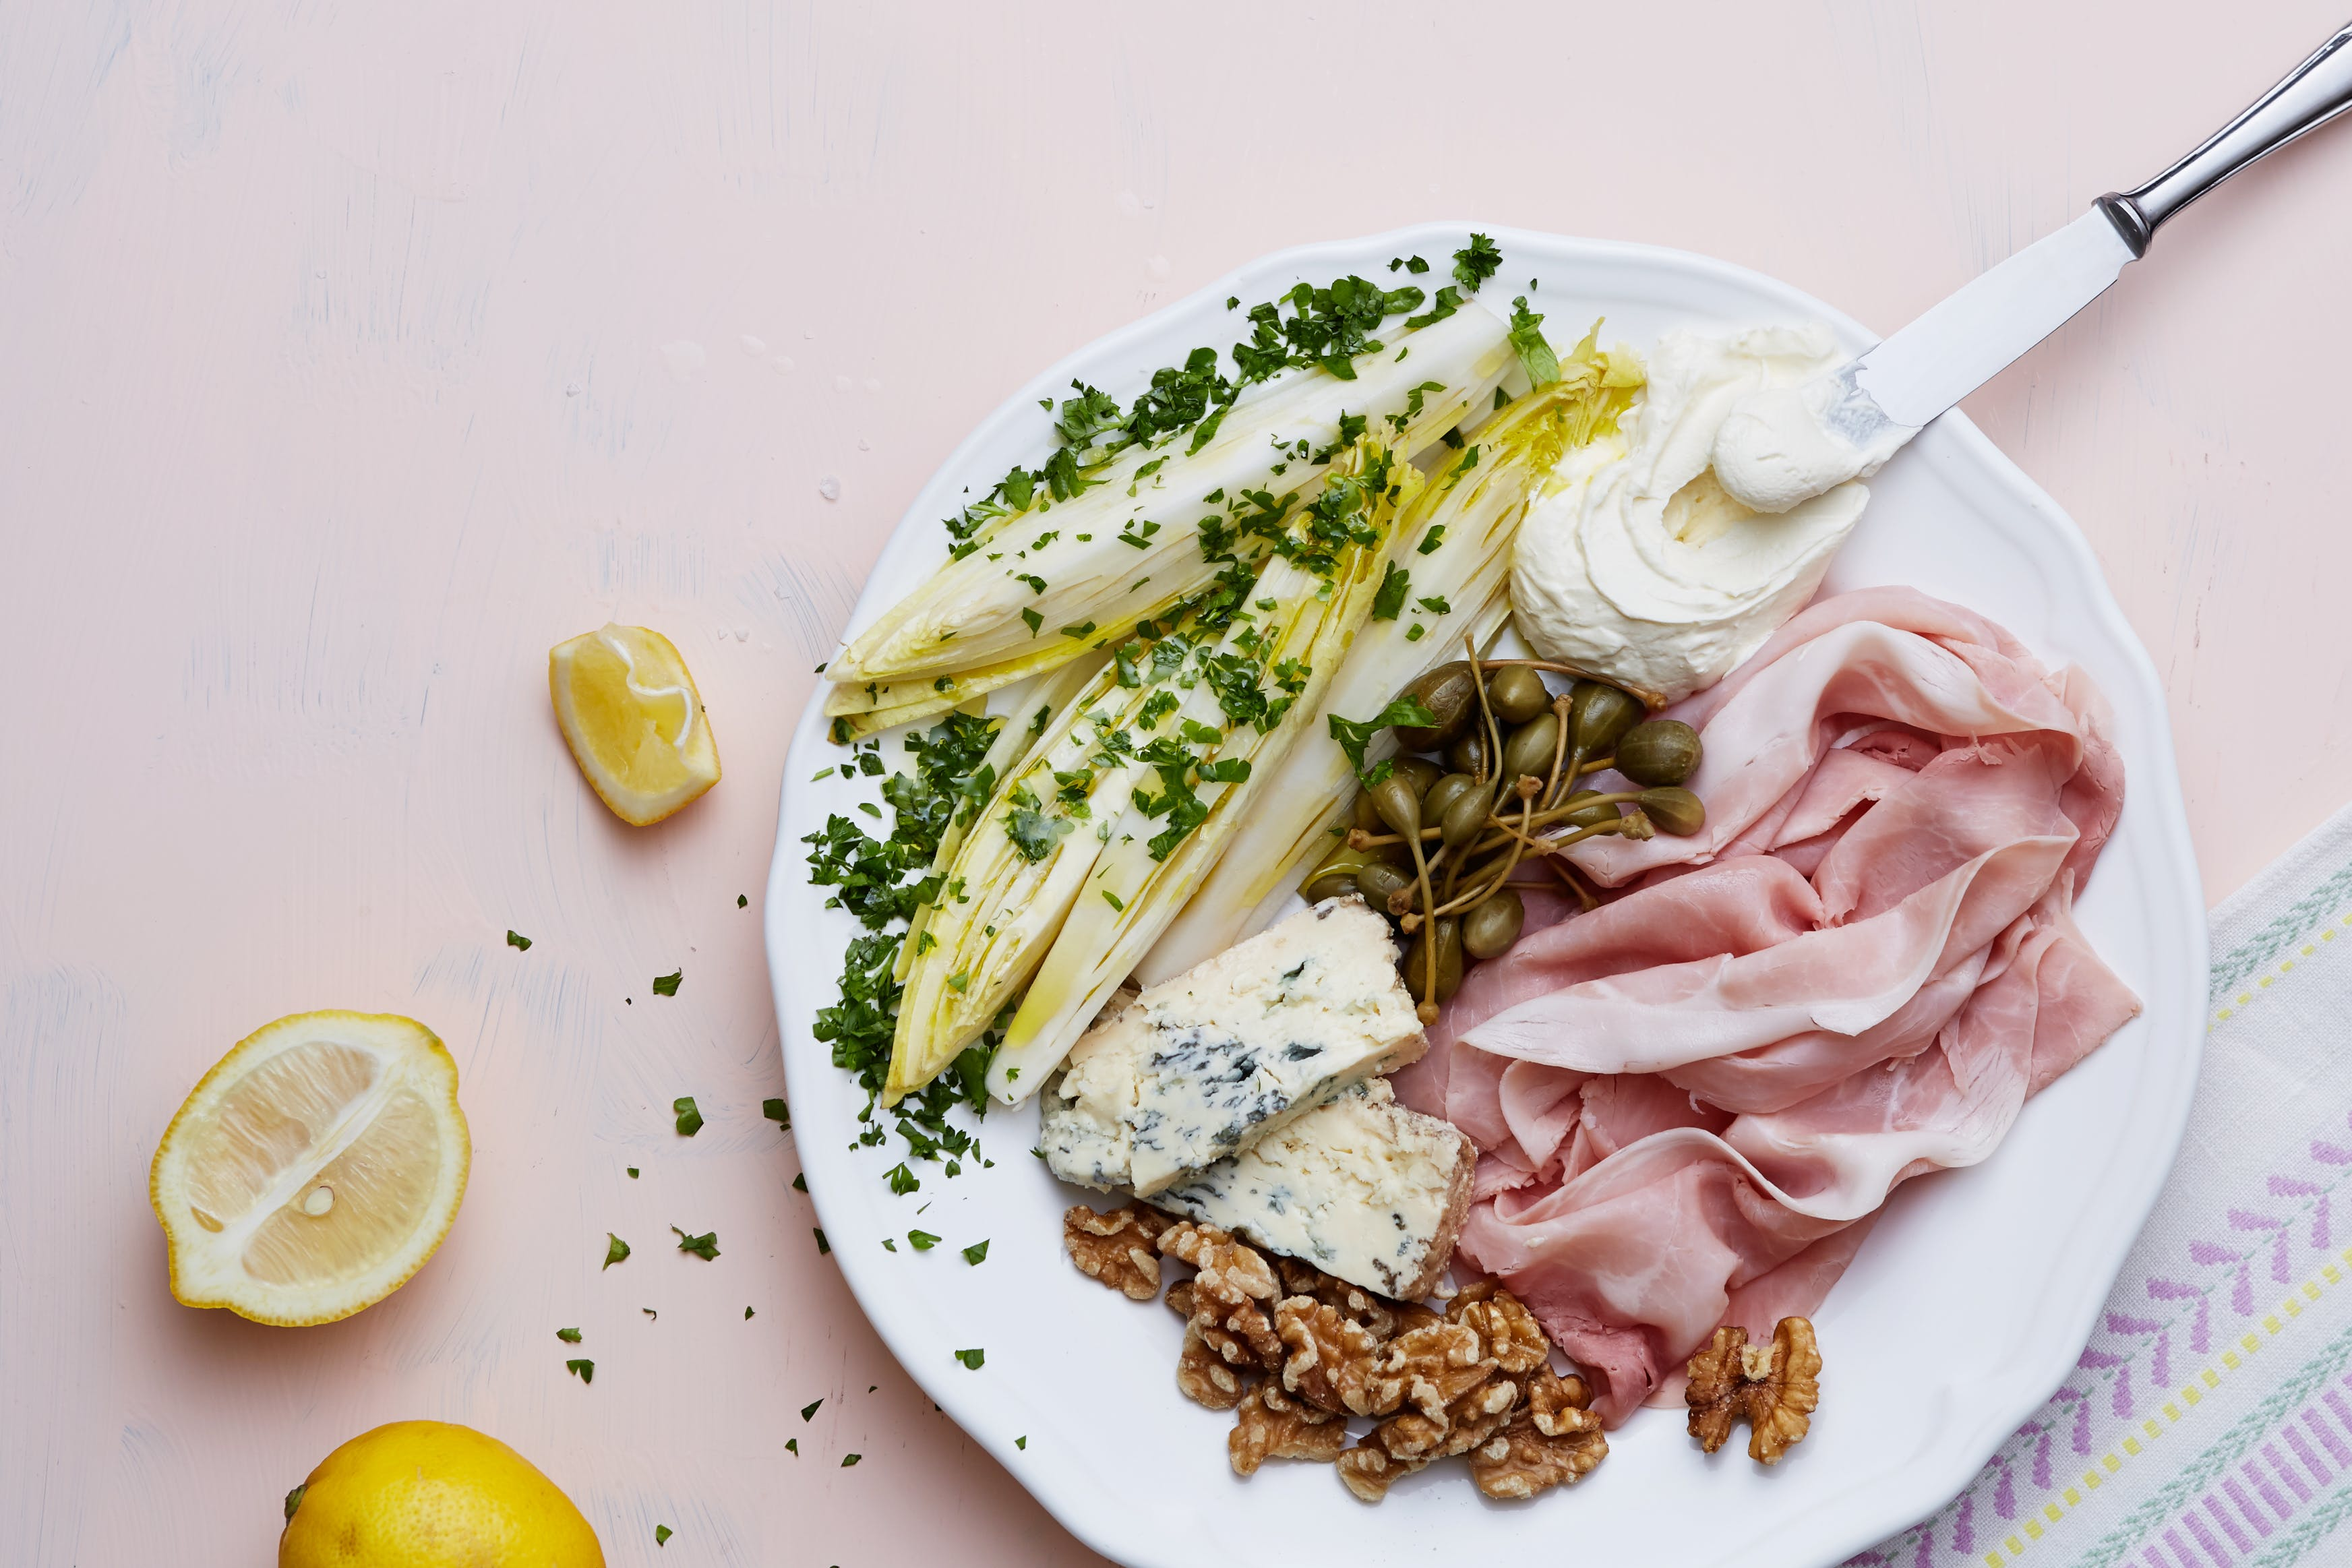 Keto prosciutto and blue cheese plate